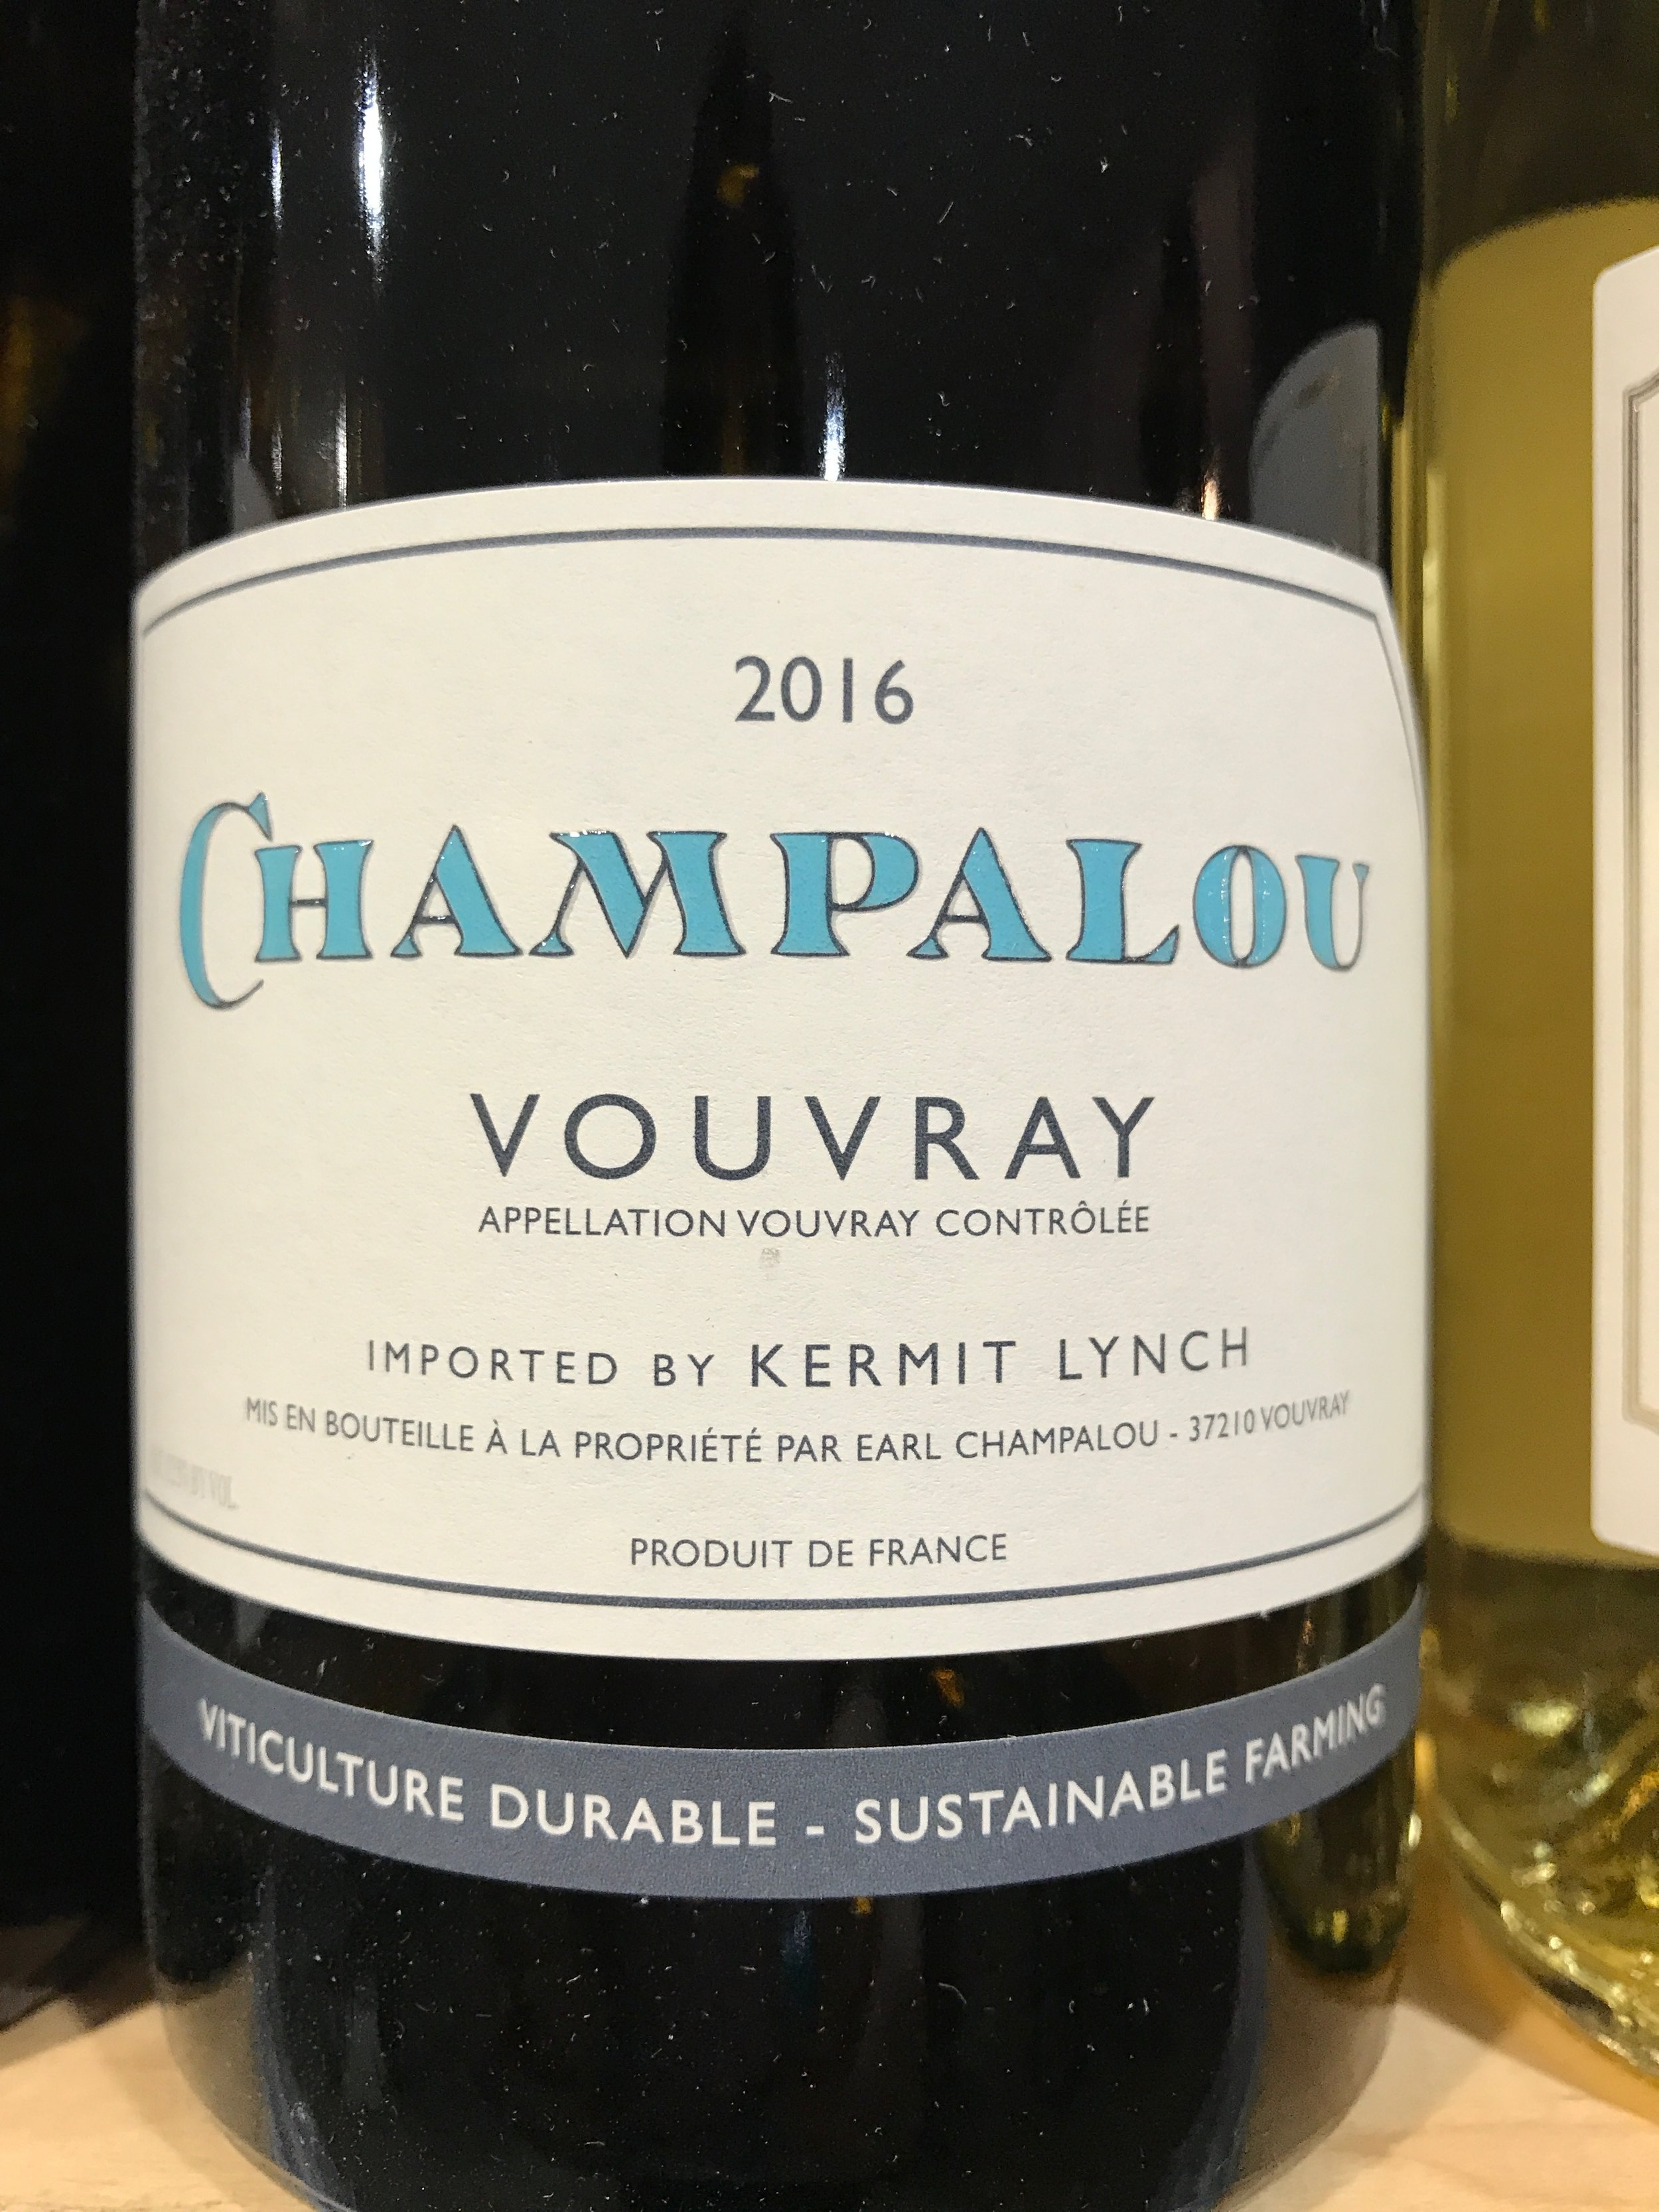 Started in 1983,Champalou has become one of the most acclaimed wineries in Vouvray. Try this dry Chenin Blanc with the pork dish.